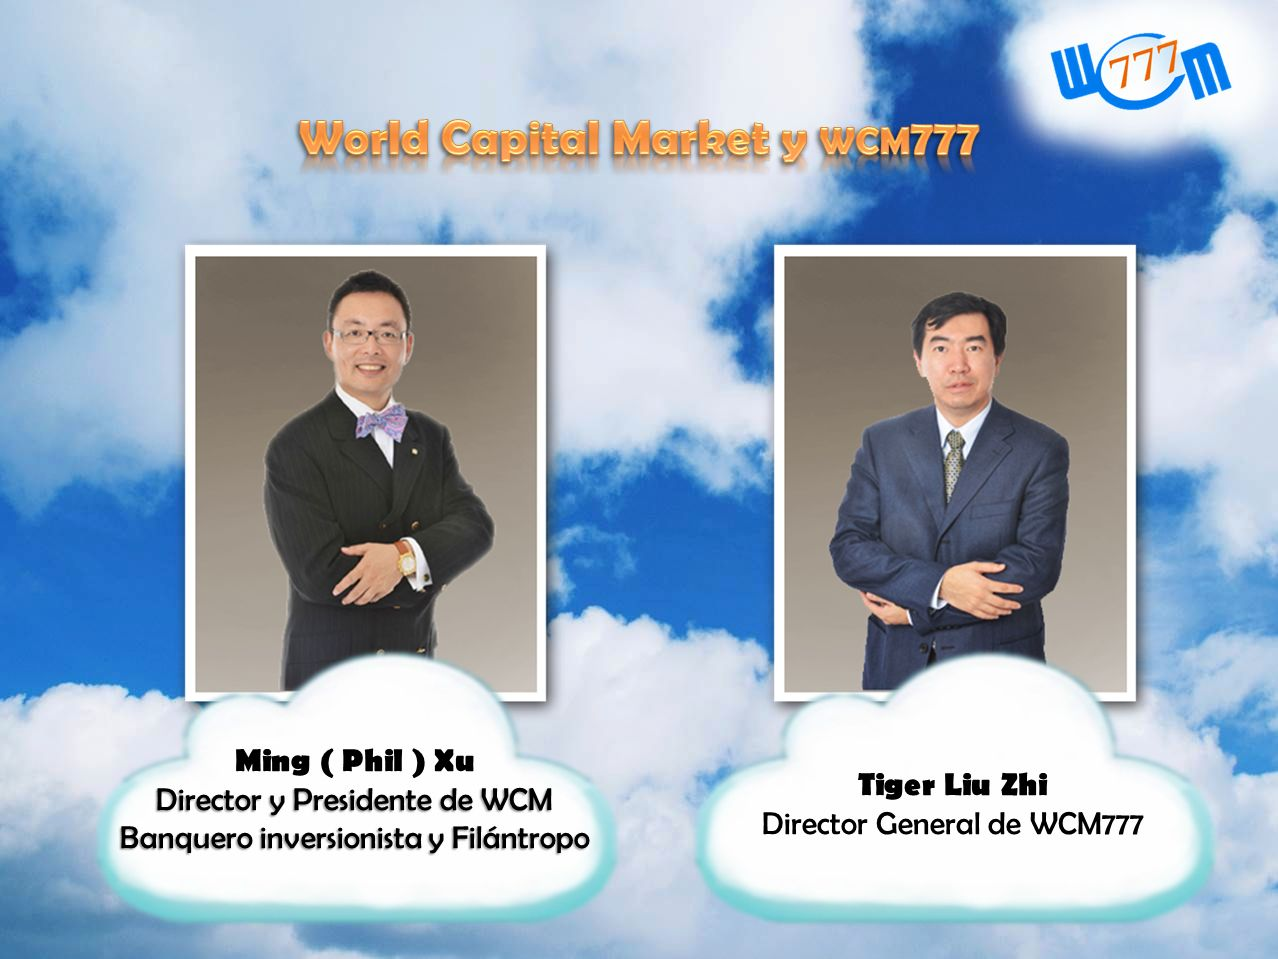 World Capital Market y wcm777